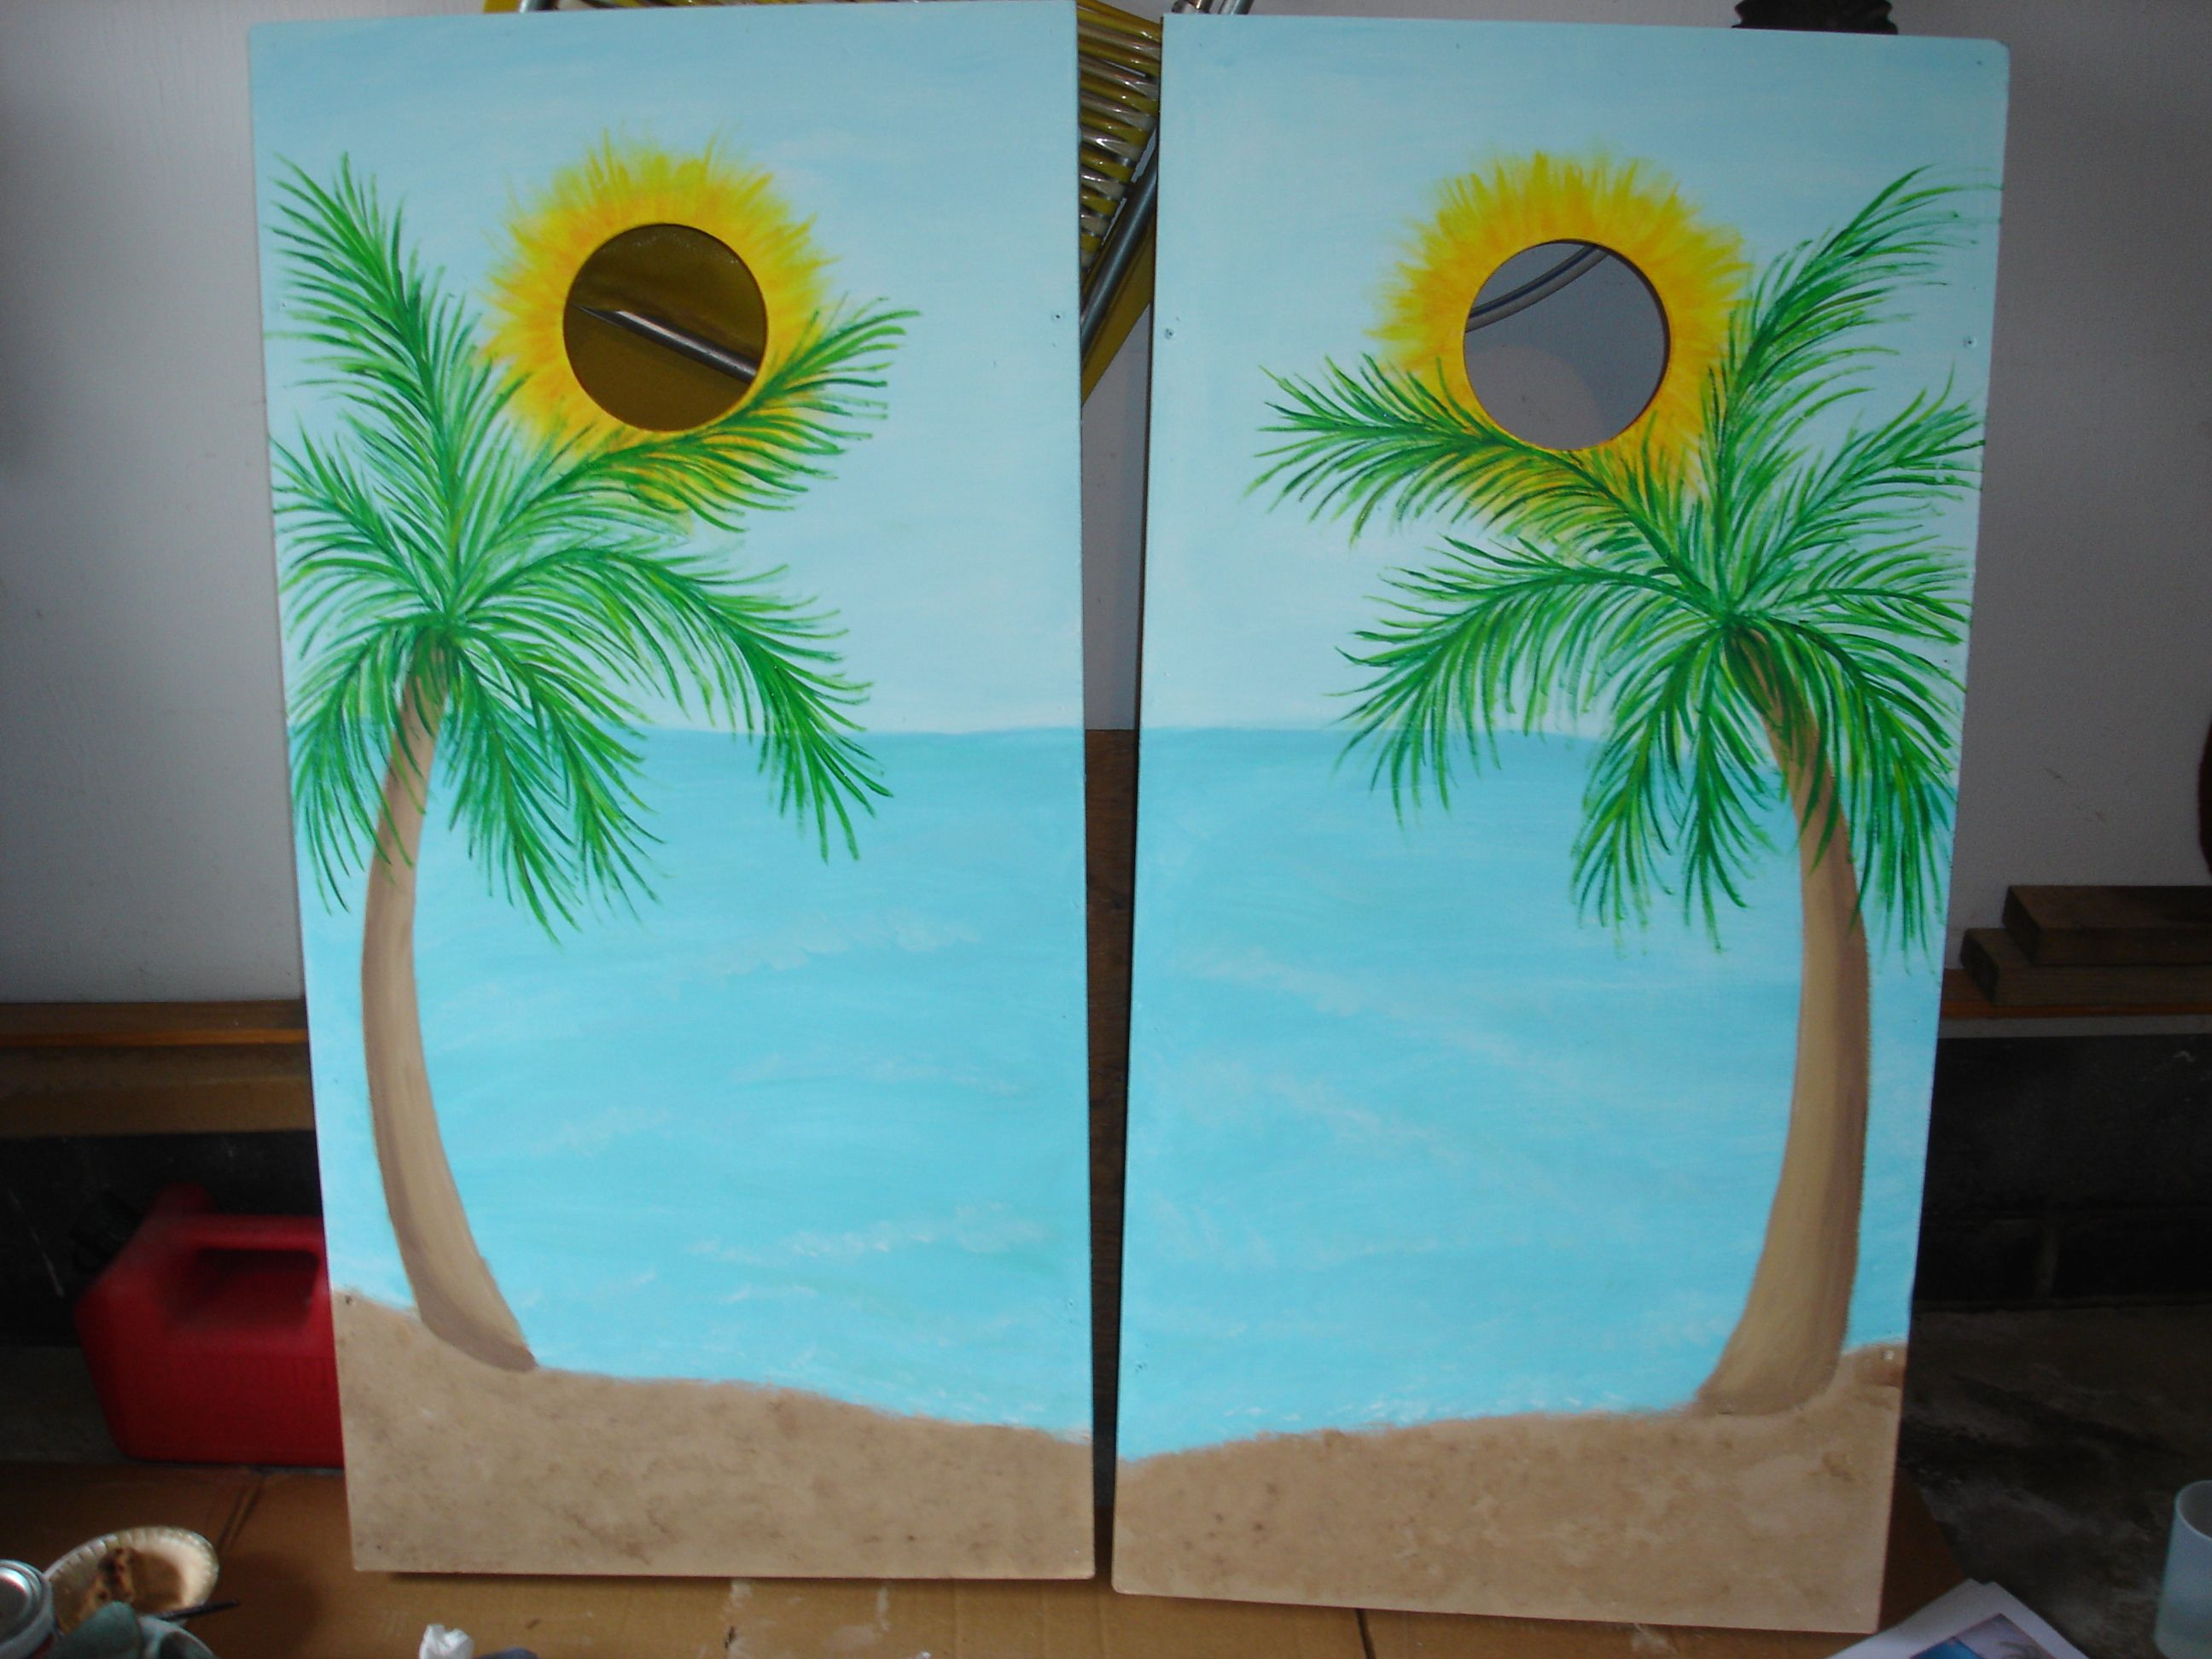 artwork corn hole design google search more cornhole design ideas - Cornhole Design Ideas